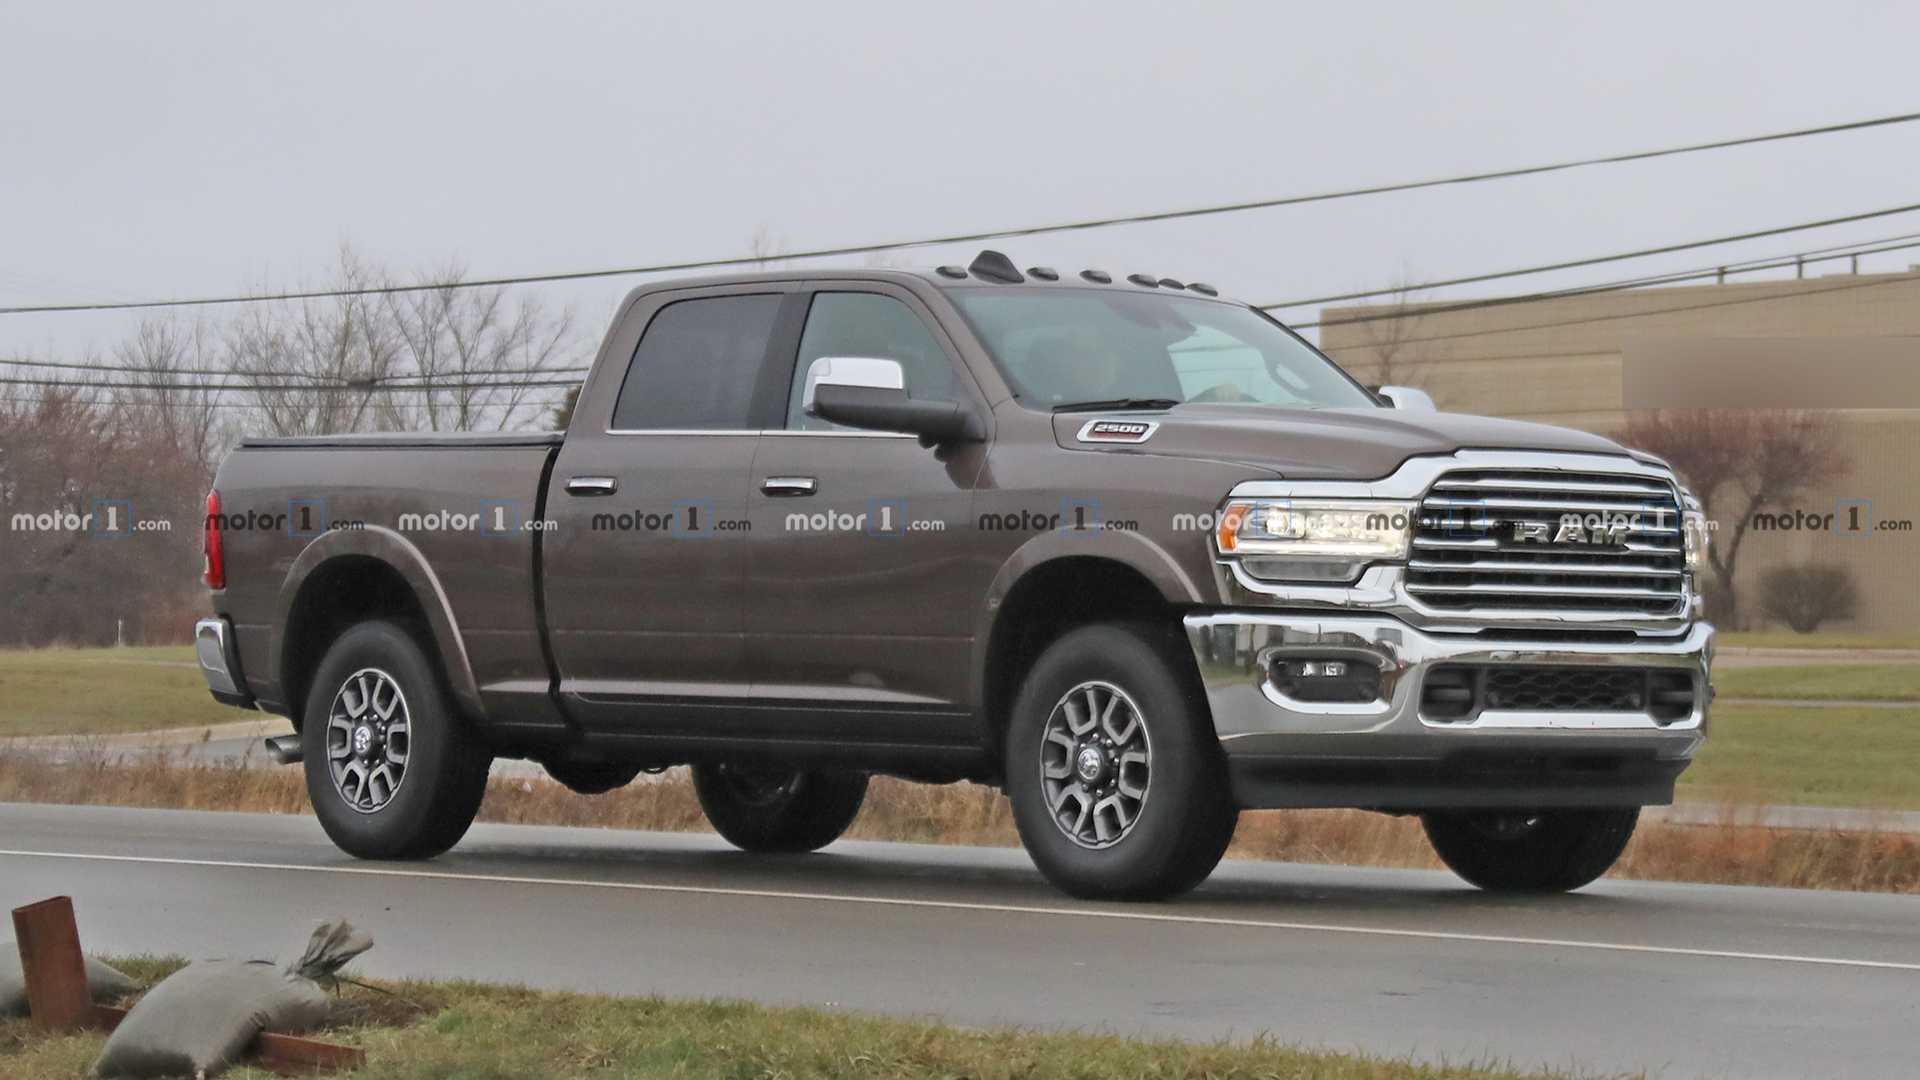 2020 Ram Hd Pickup Convoy Spied Completely Uncovered